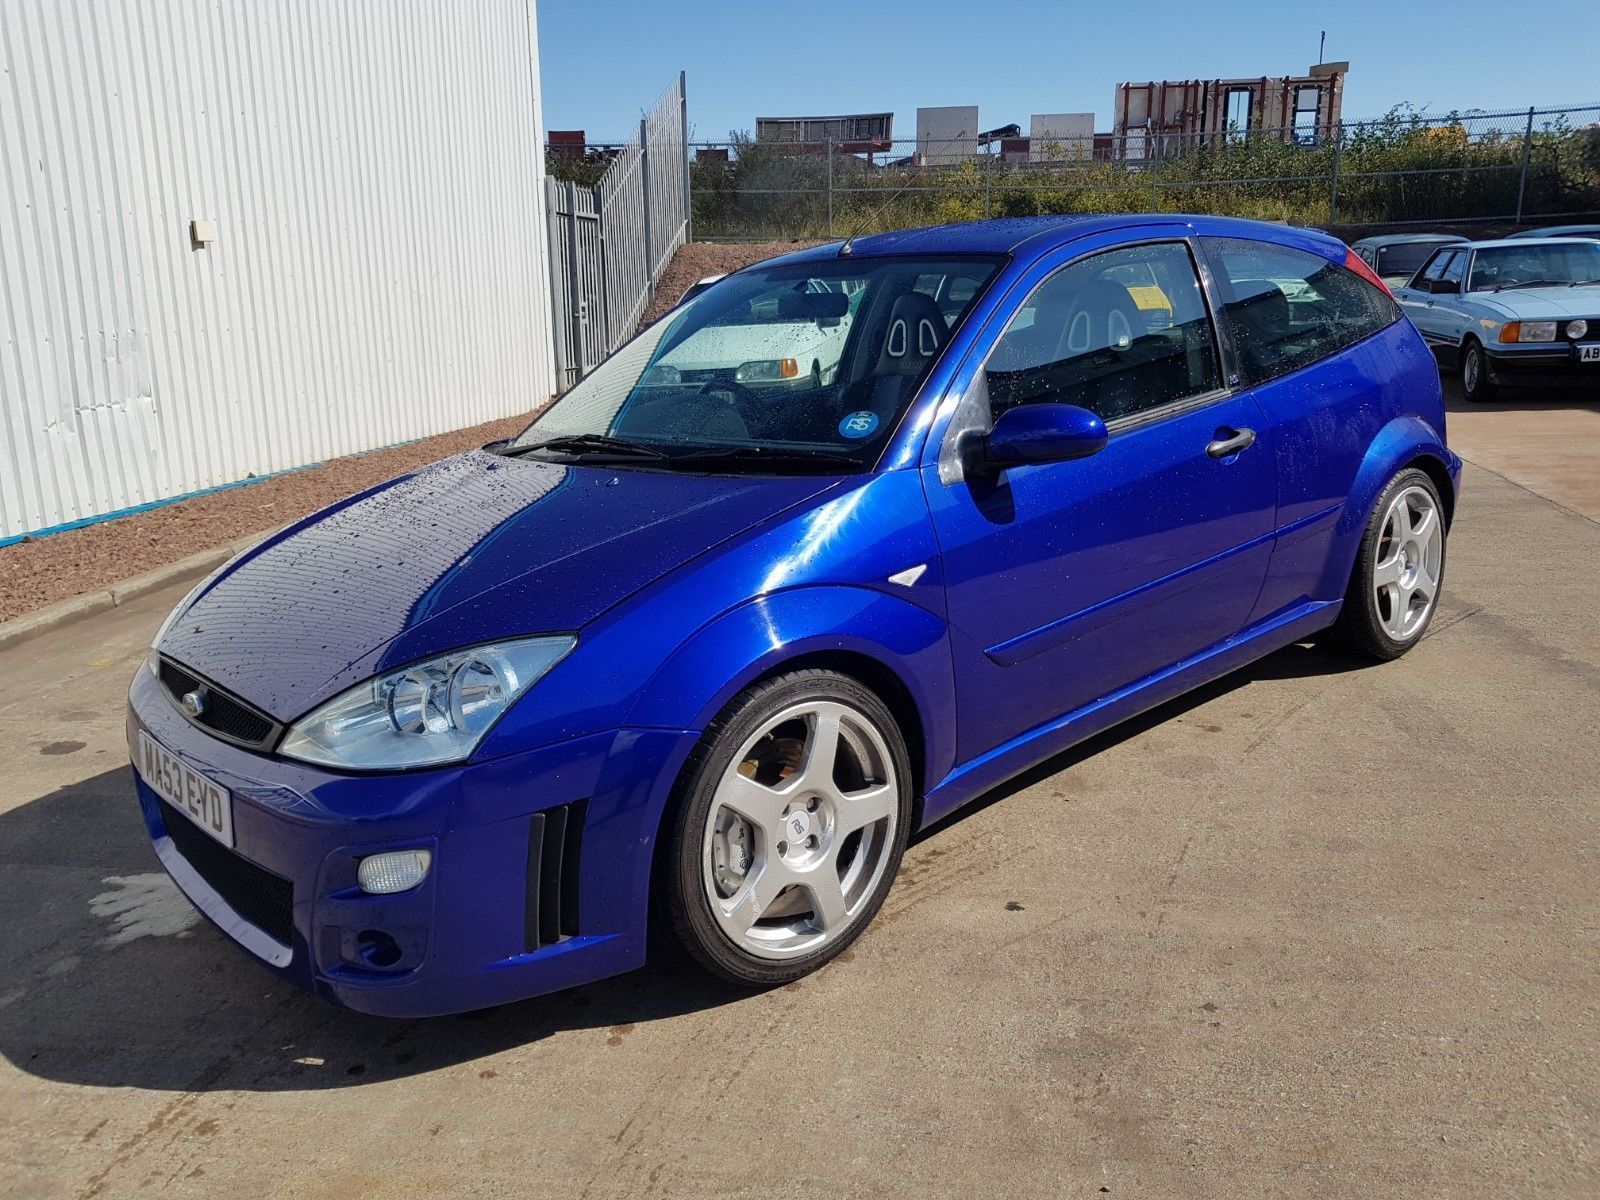 Ford Focus Rs Mk1 On Ebay Here Https Ebay To 2q9uc1k Ford